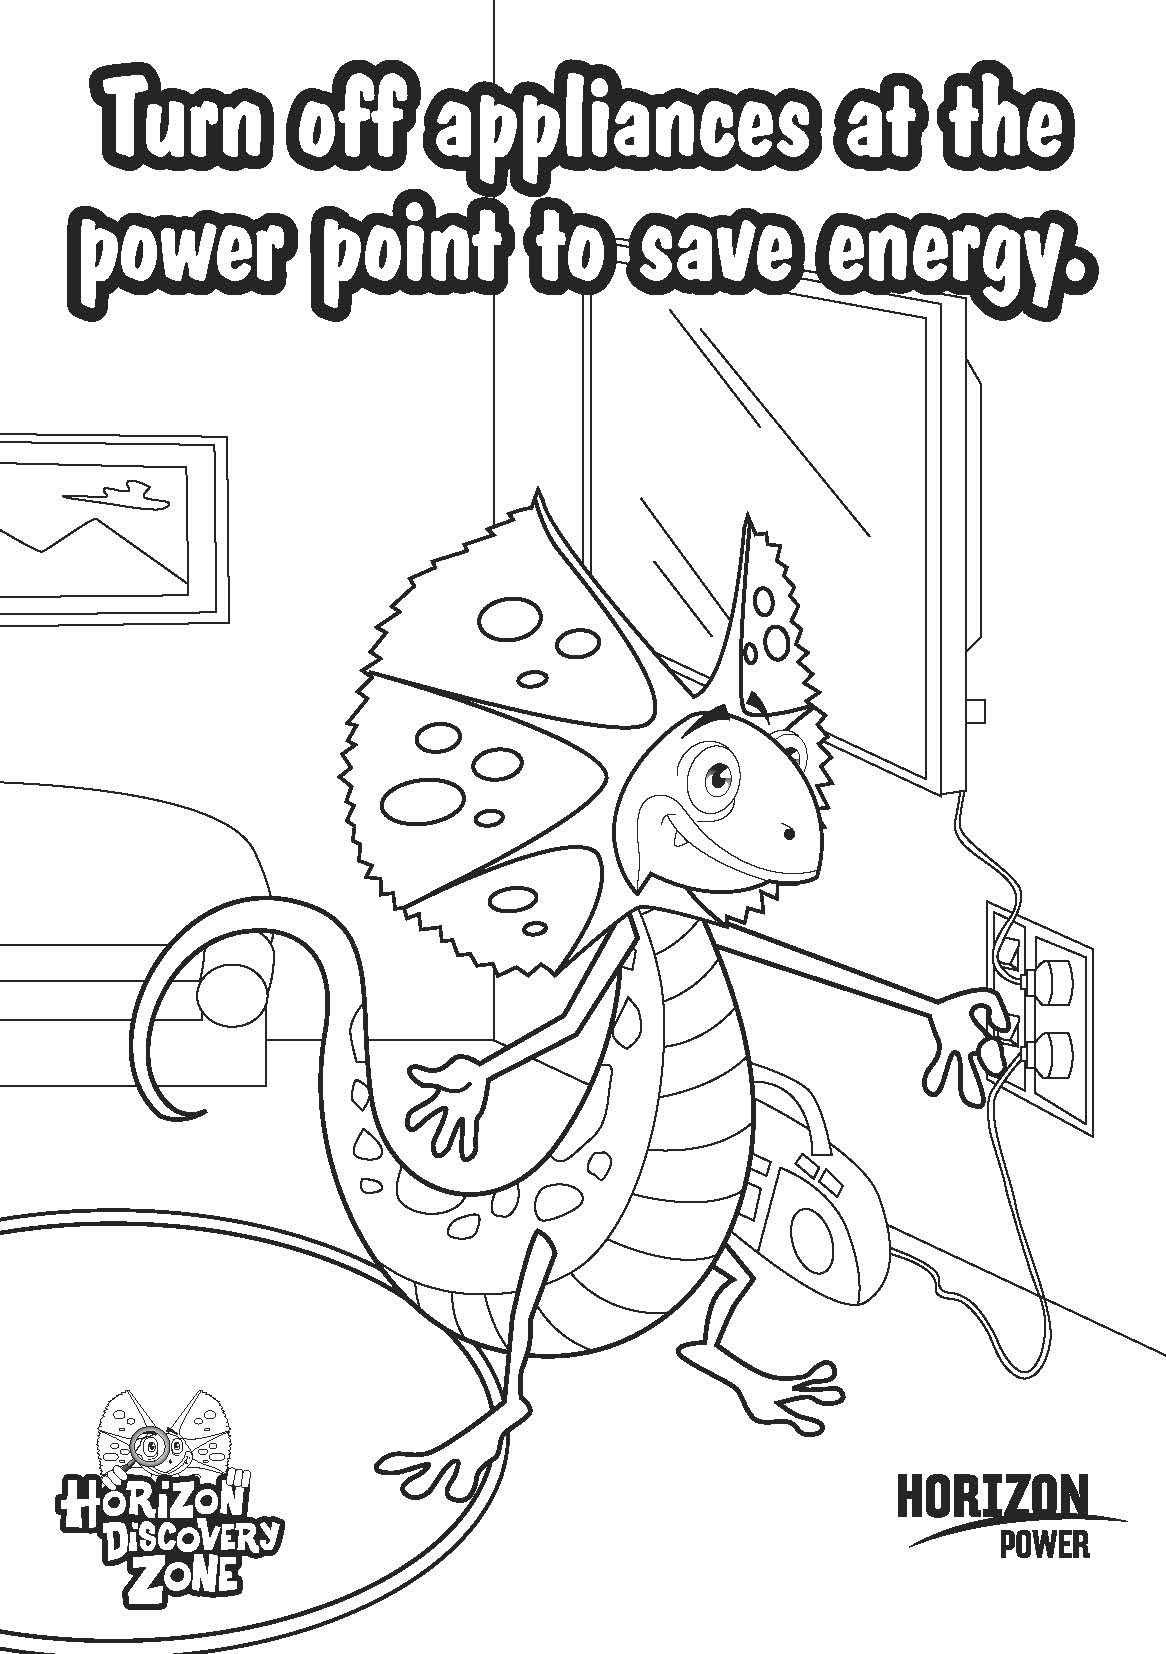 Vacuum Cleaner Coloring Page